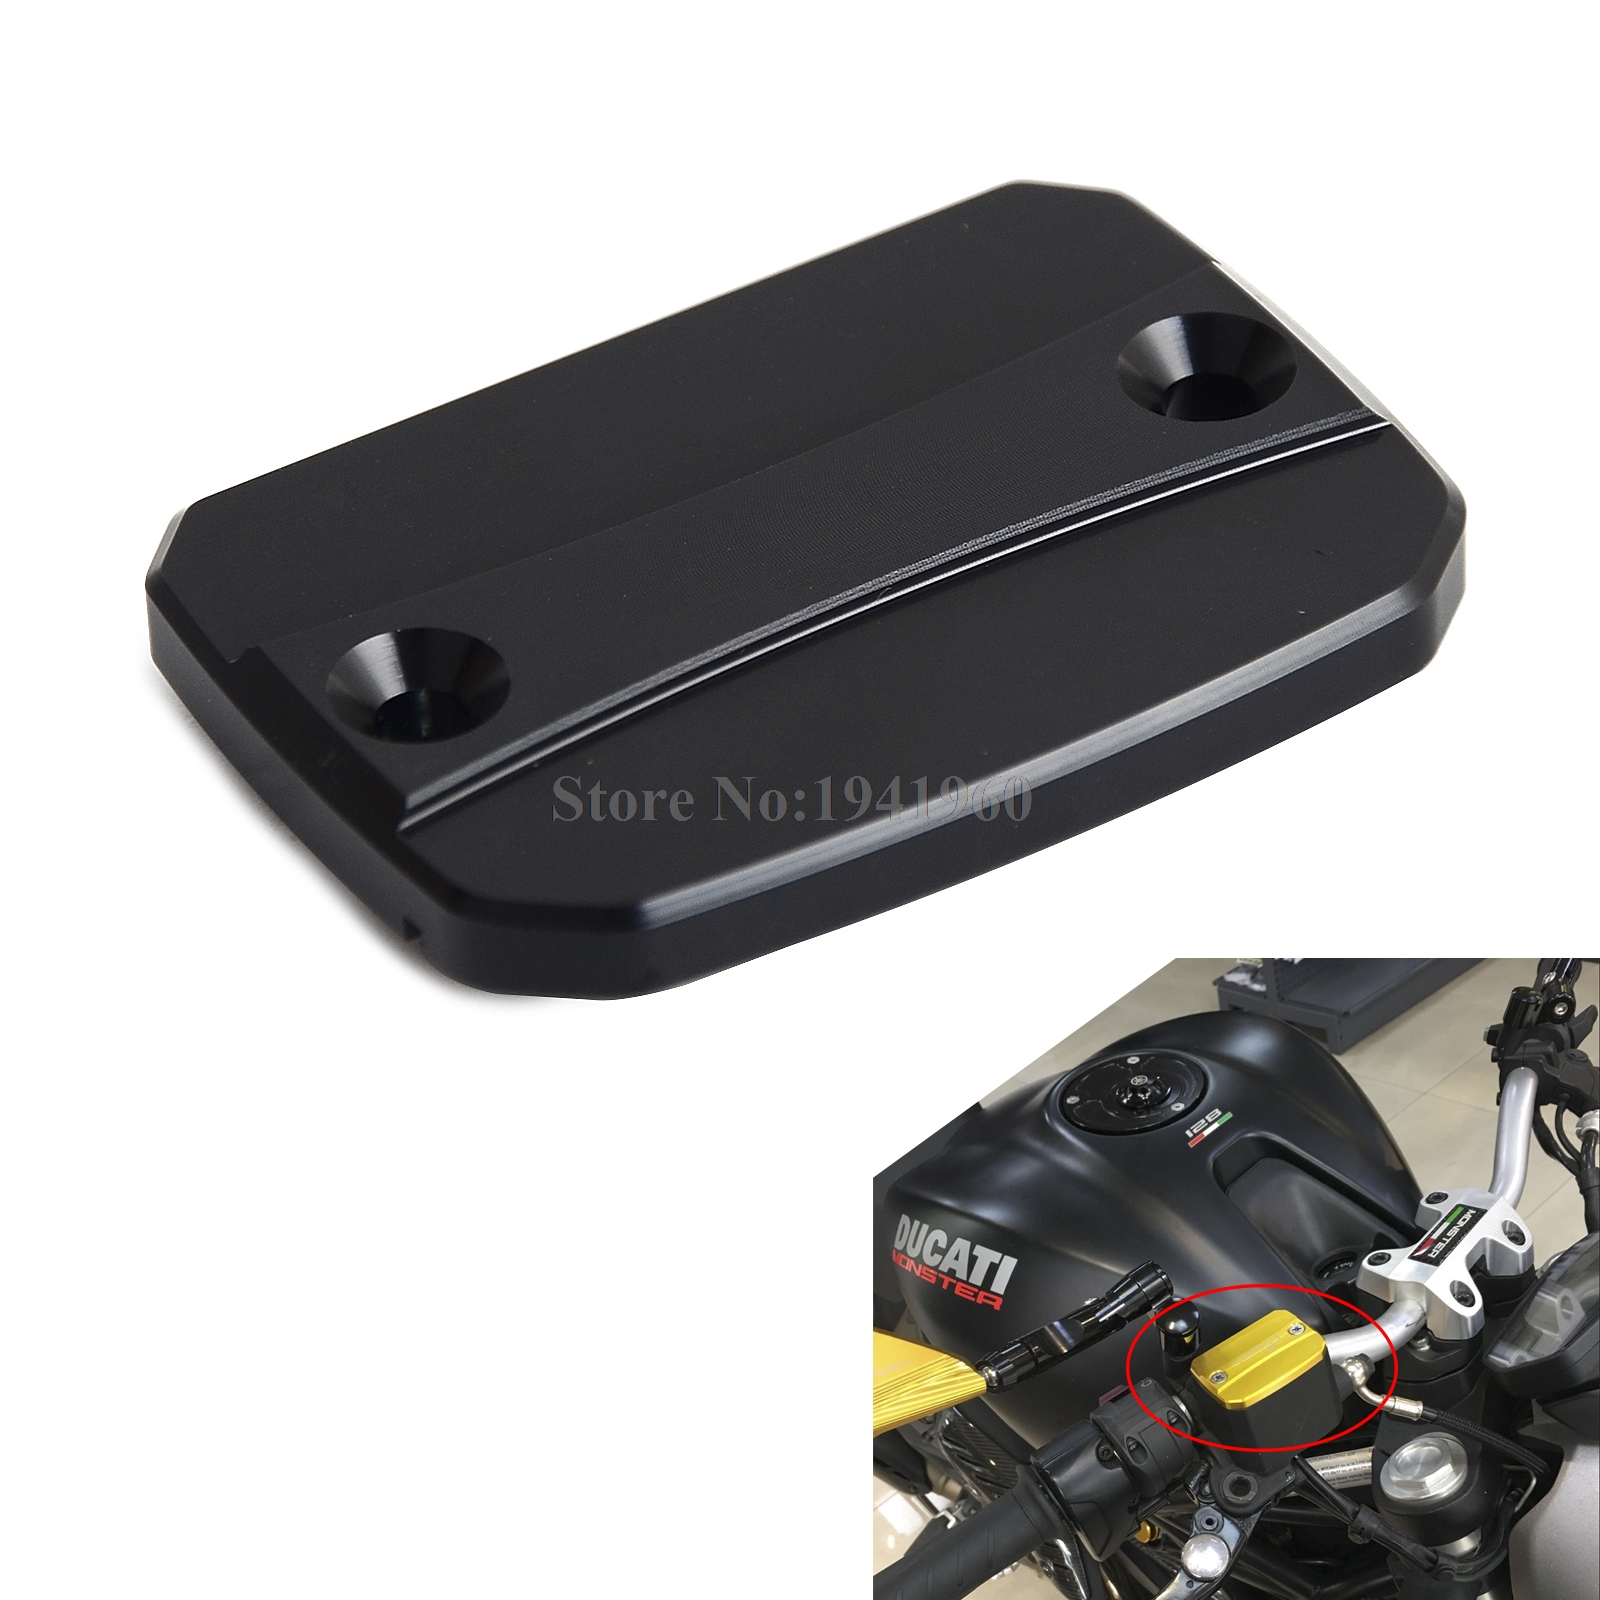 H2CNC Motorycle Brake Fluid Reservoir Cap Cover For Ducati Monster 620 695 696 796 821 S2R 800 Hypermotard 796 Multistrada 620 cnc long brake clutch levers for ducati 400 monster 620 695 696 796 monster s2r 800